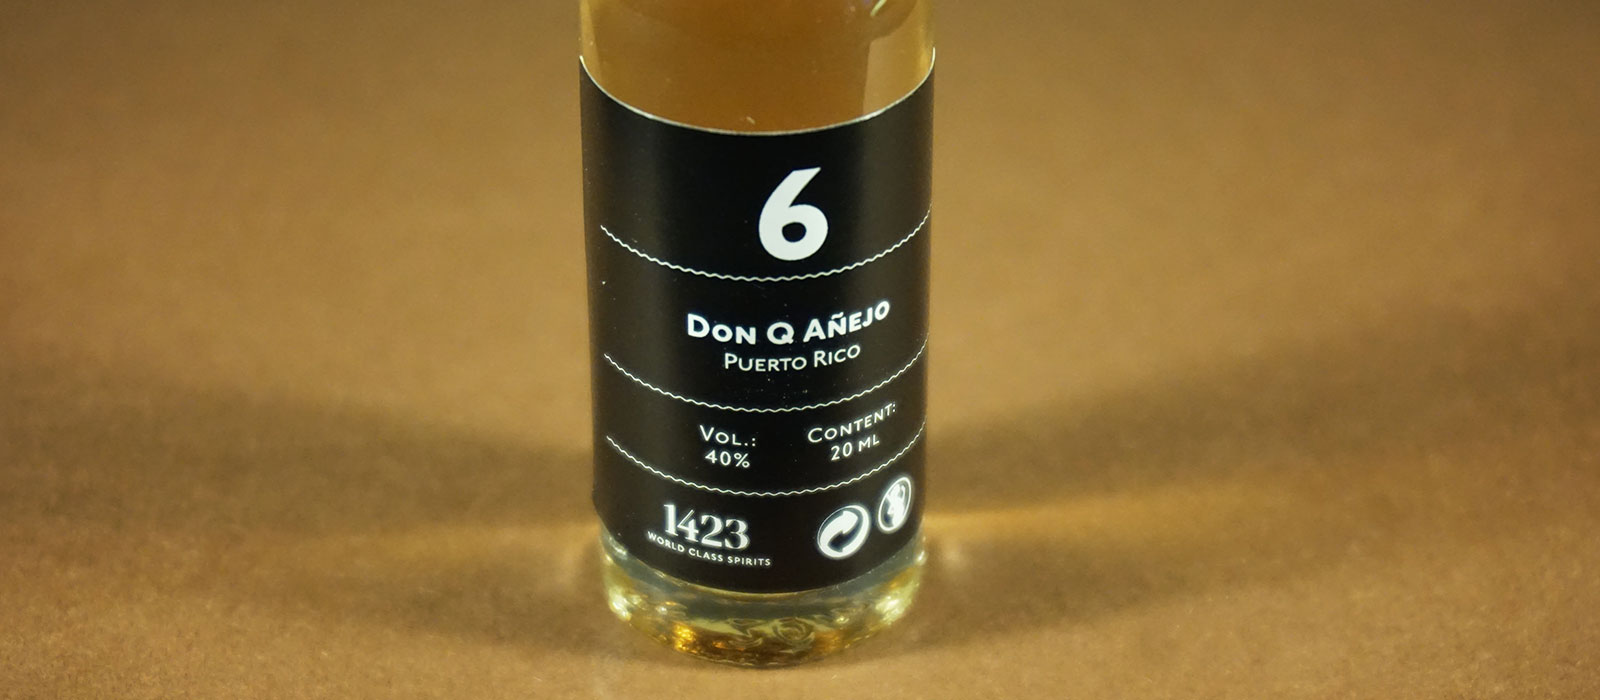 24 Days of Rum 2017: Dag 6 – Don Q Anejo